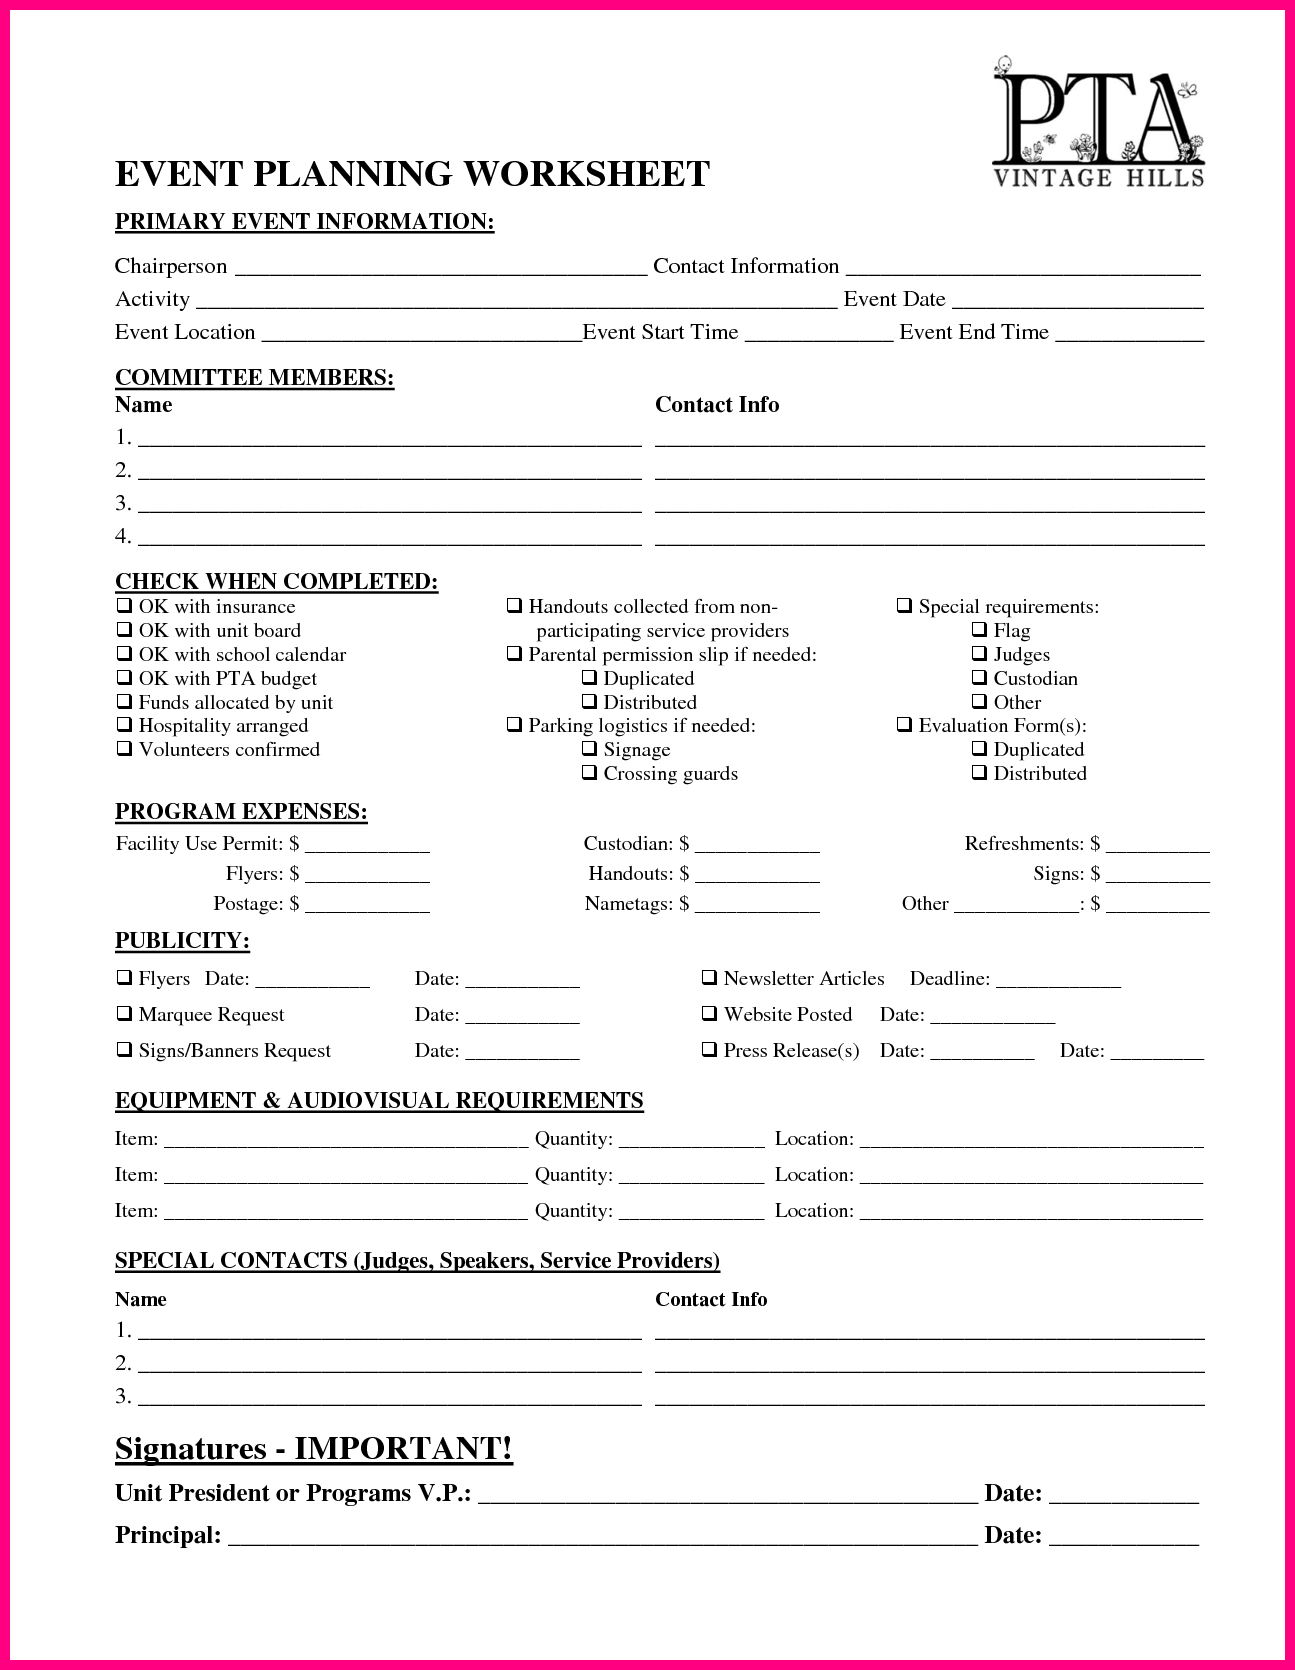 Vhes Pta Event Planning Worksheet By Delrey